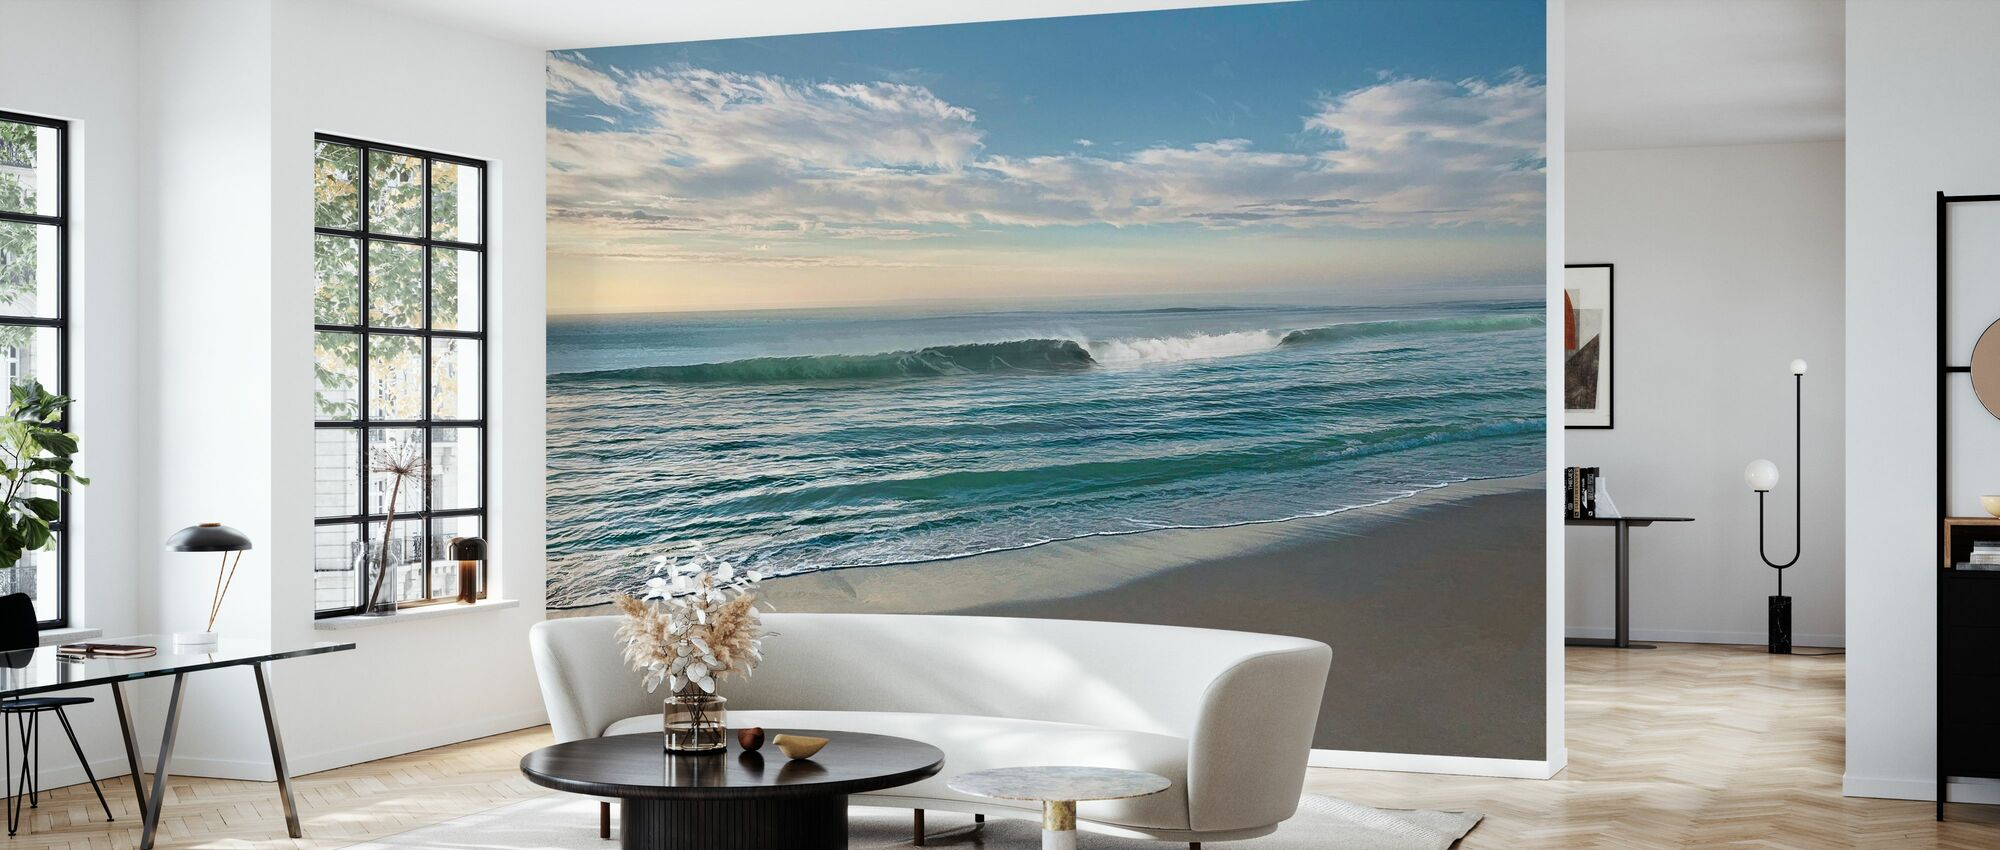 Waves of Water - Wallpaper - Living Room